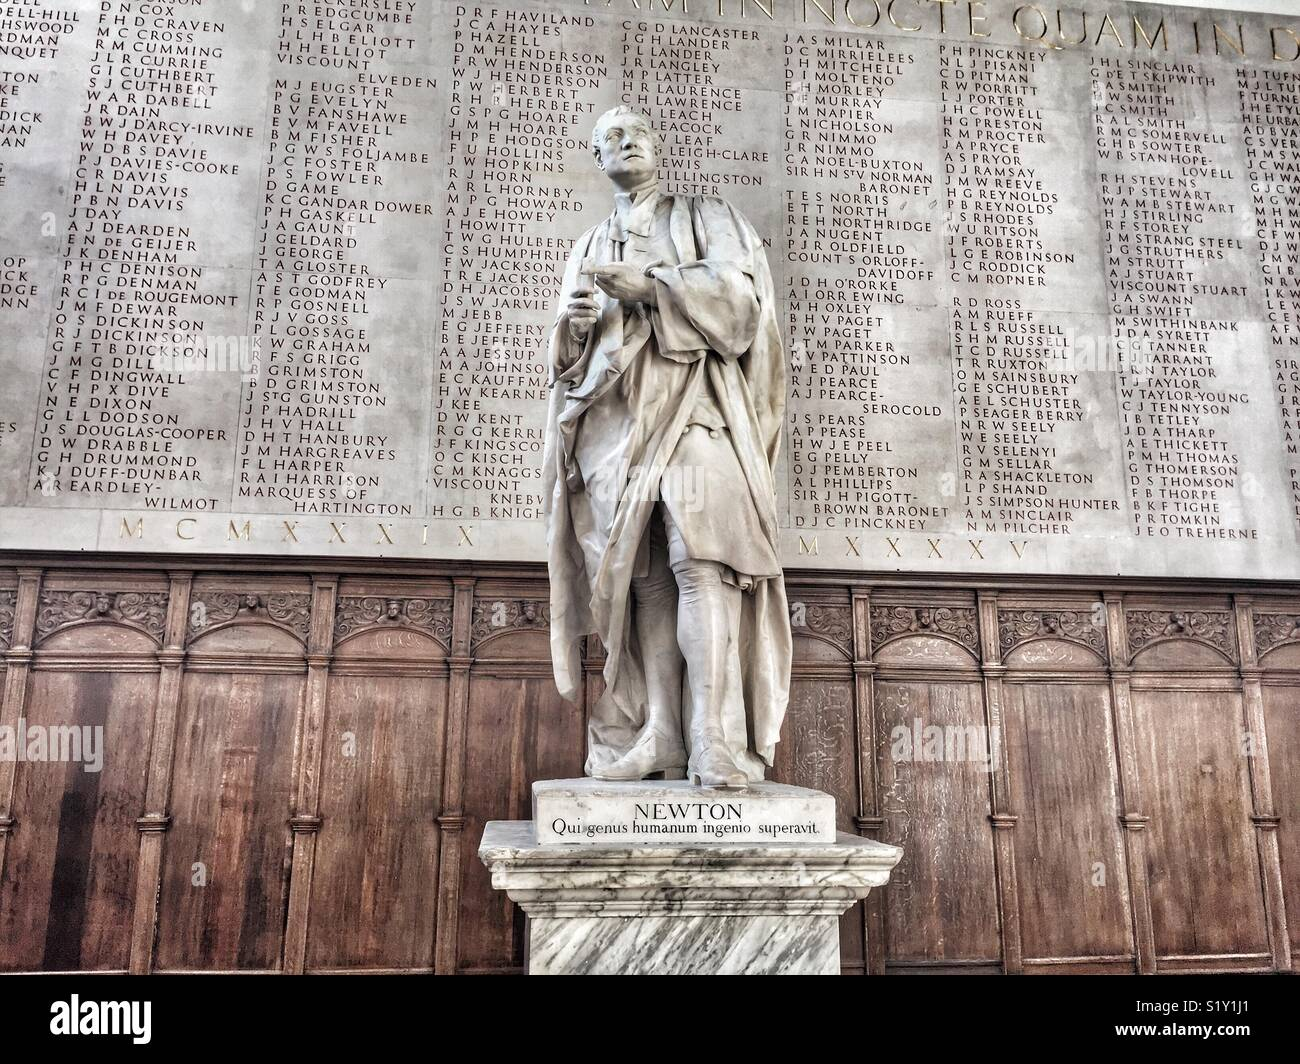 Statue of Isaac Newton in Trinity College Chapel, Cambridge University - Stock Image